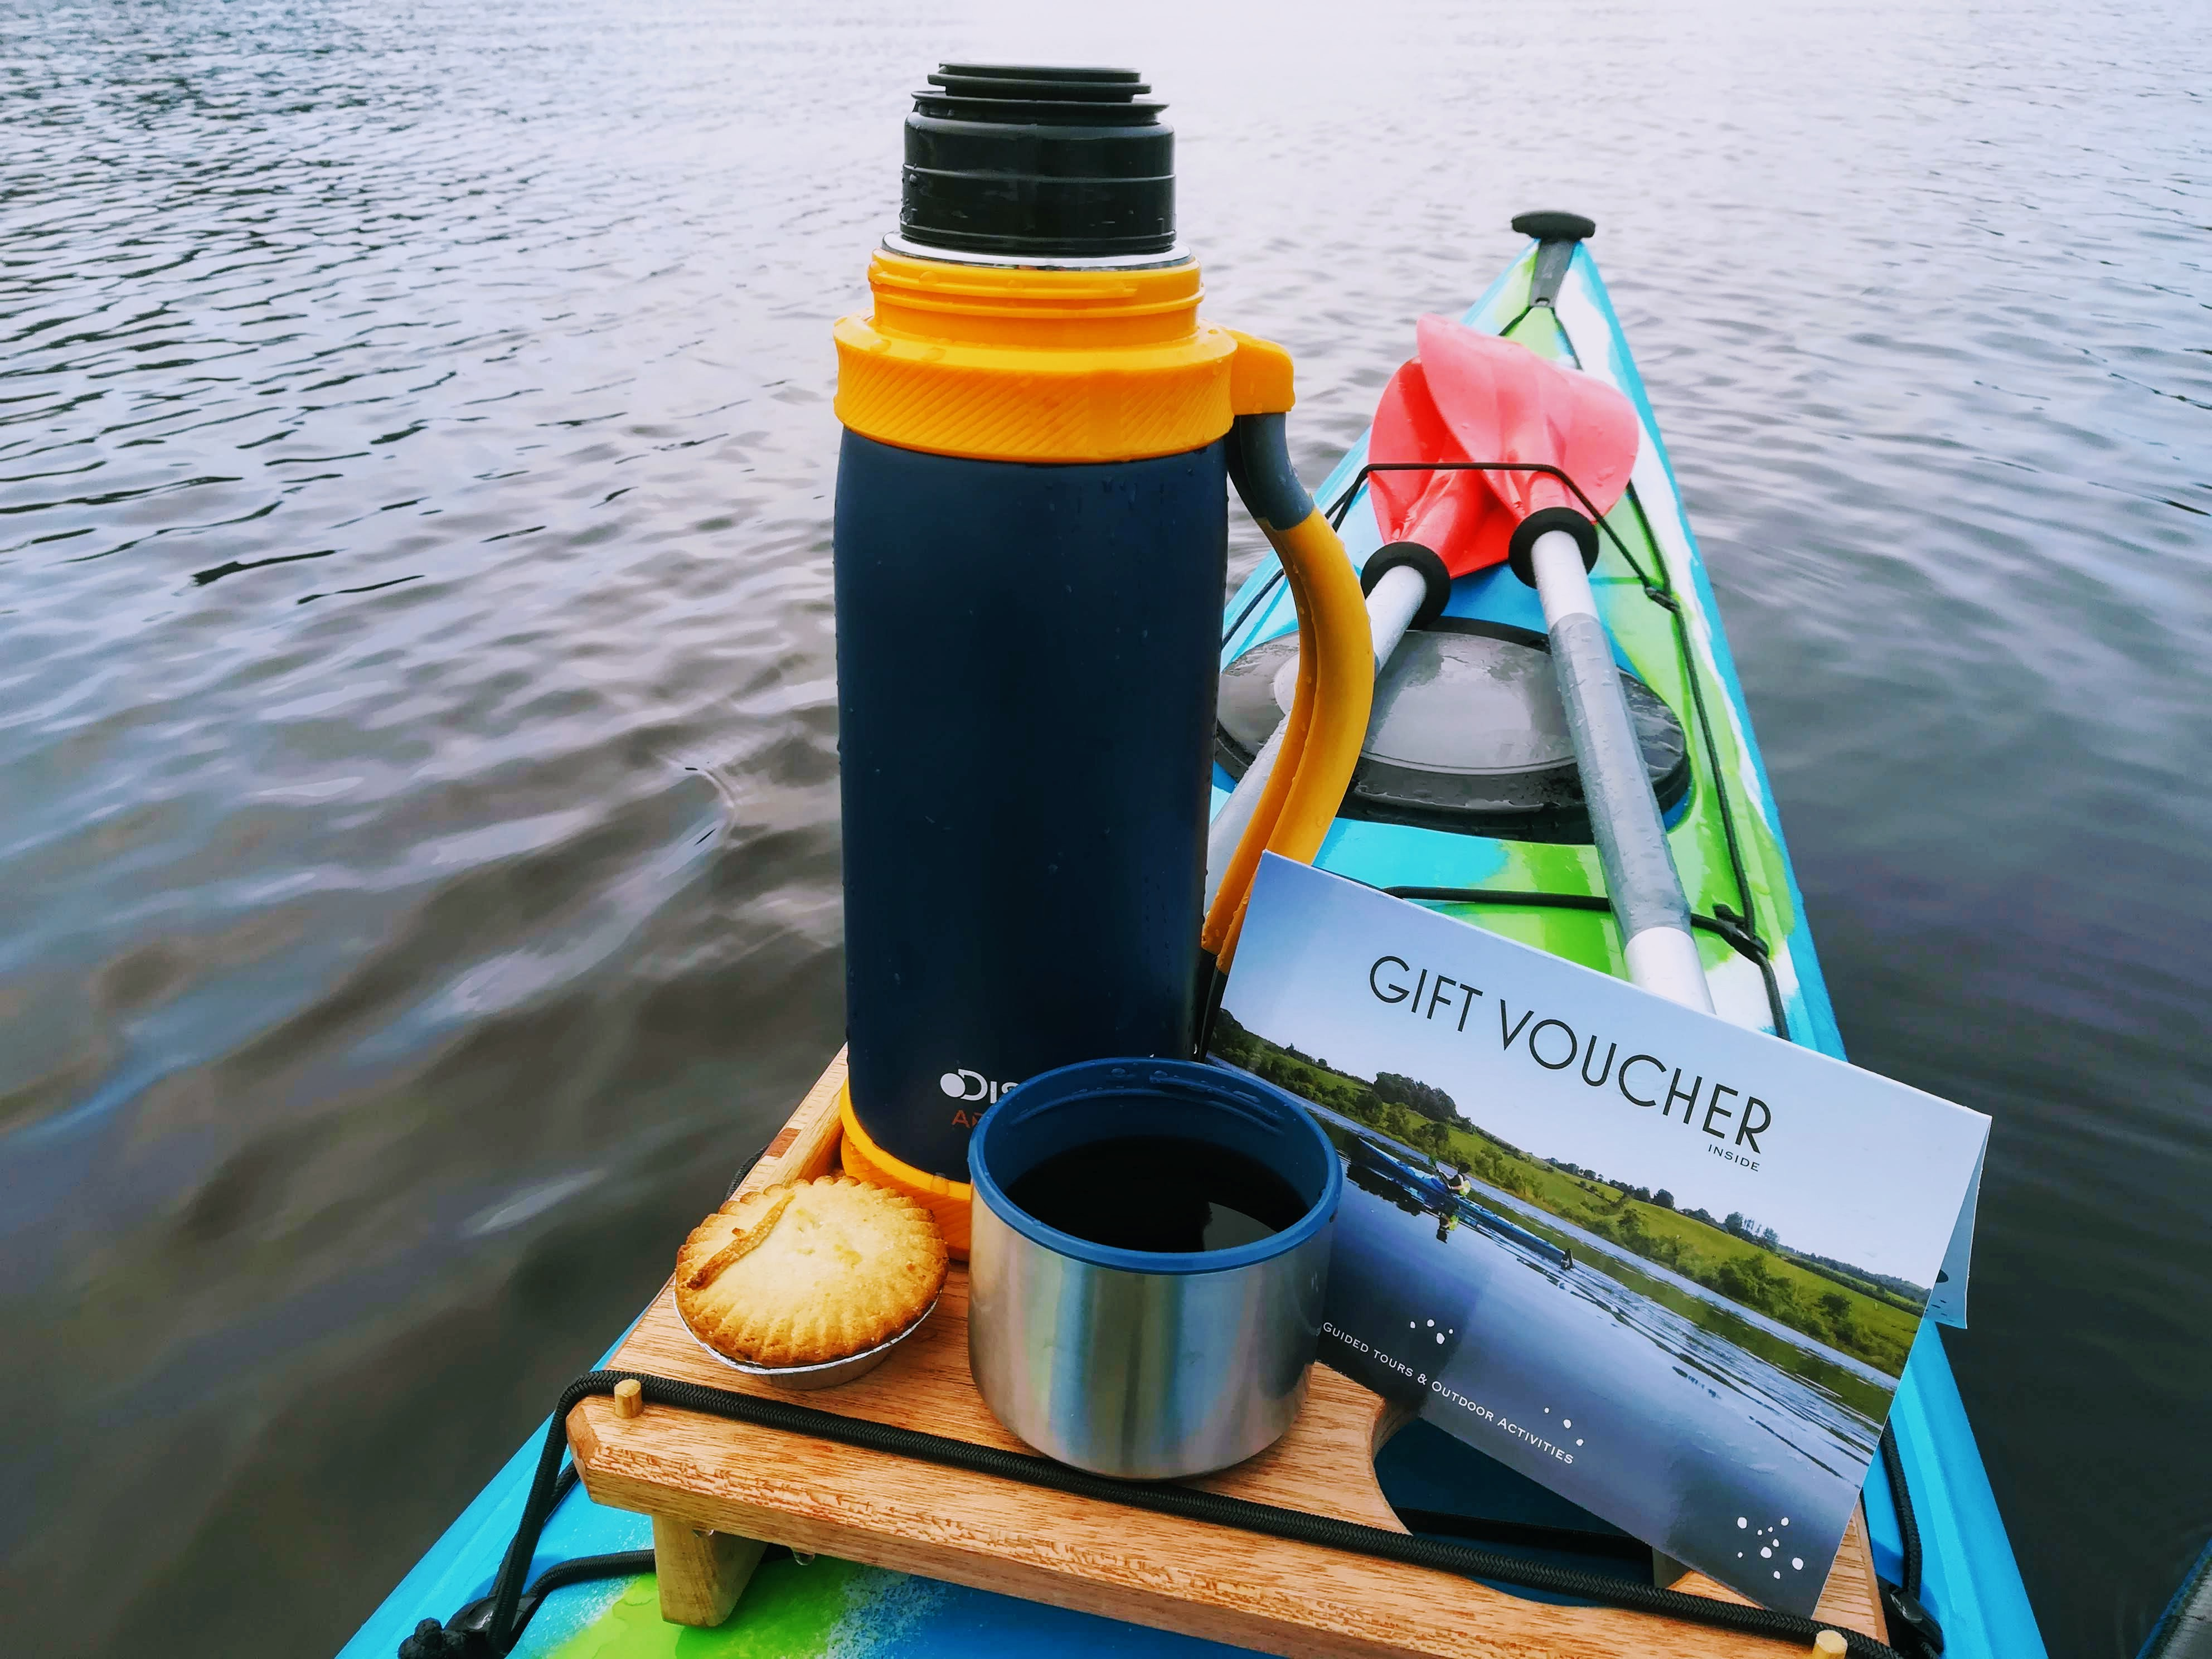 A perfect gift - bespoke kayaking and dining experience - Outdoor Explore